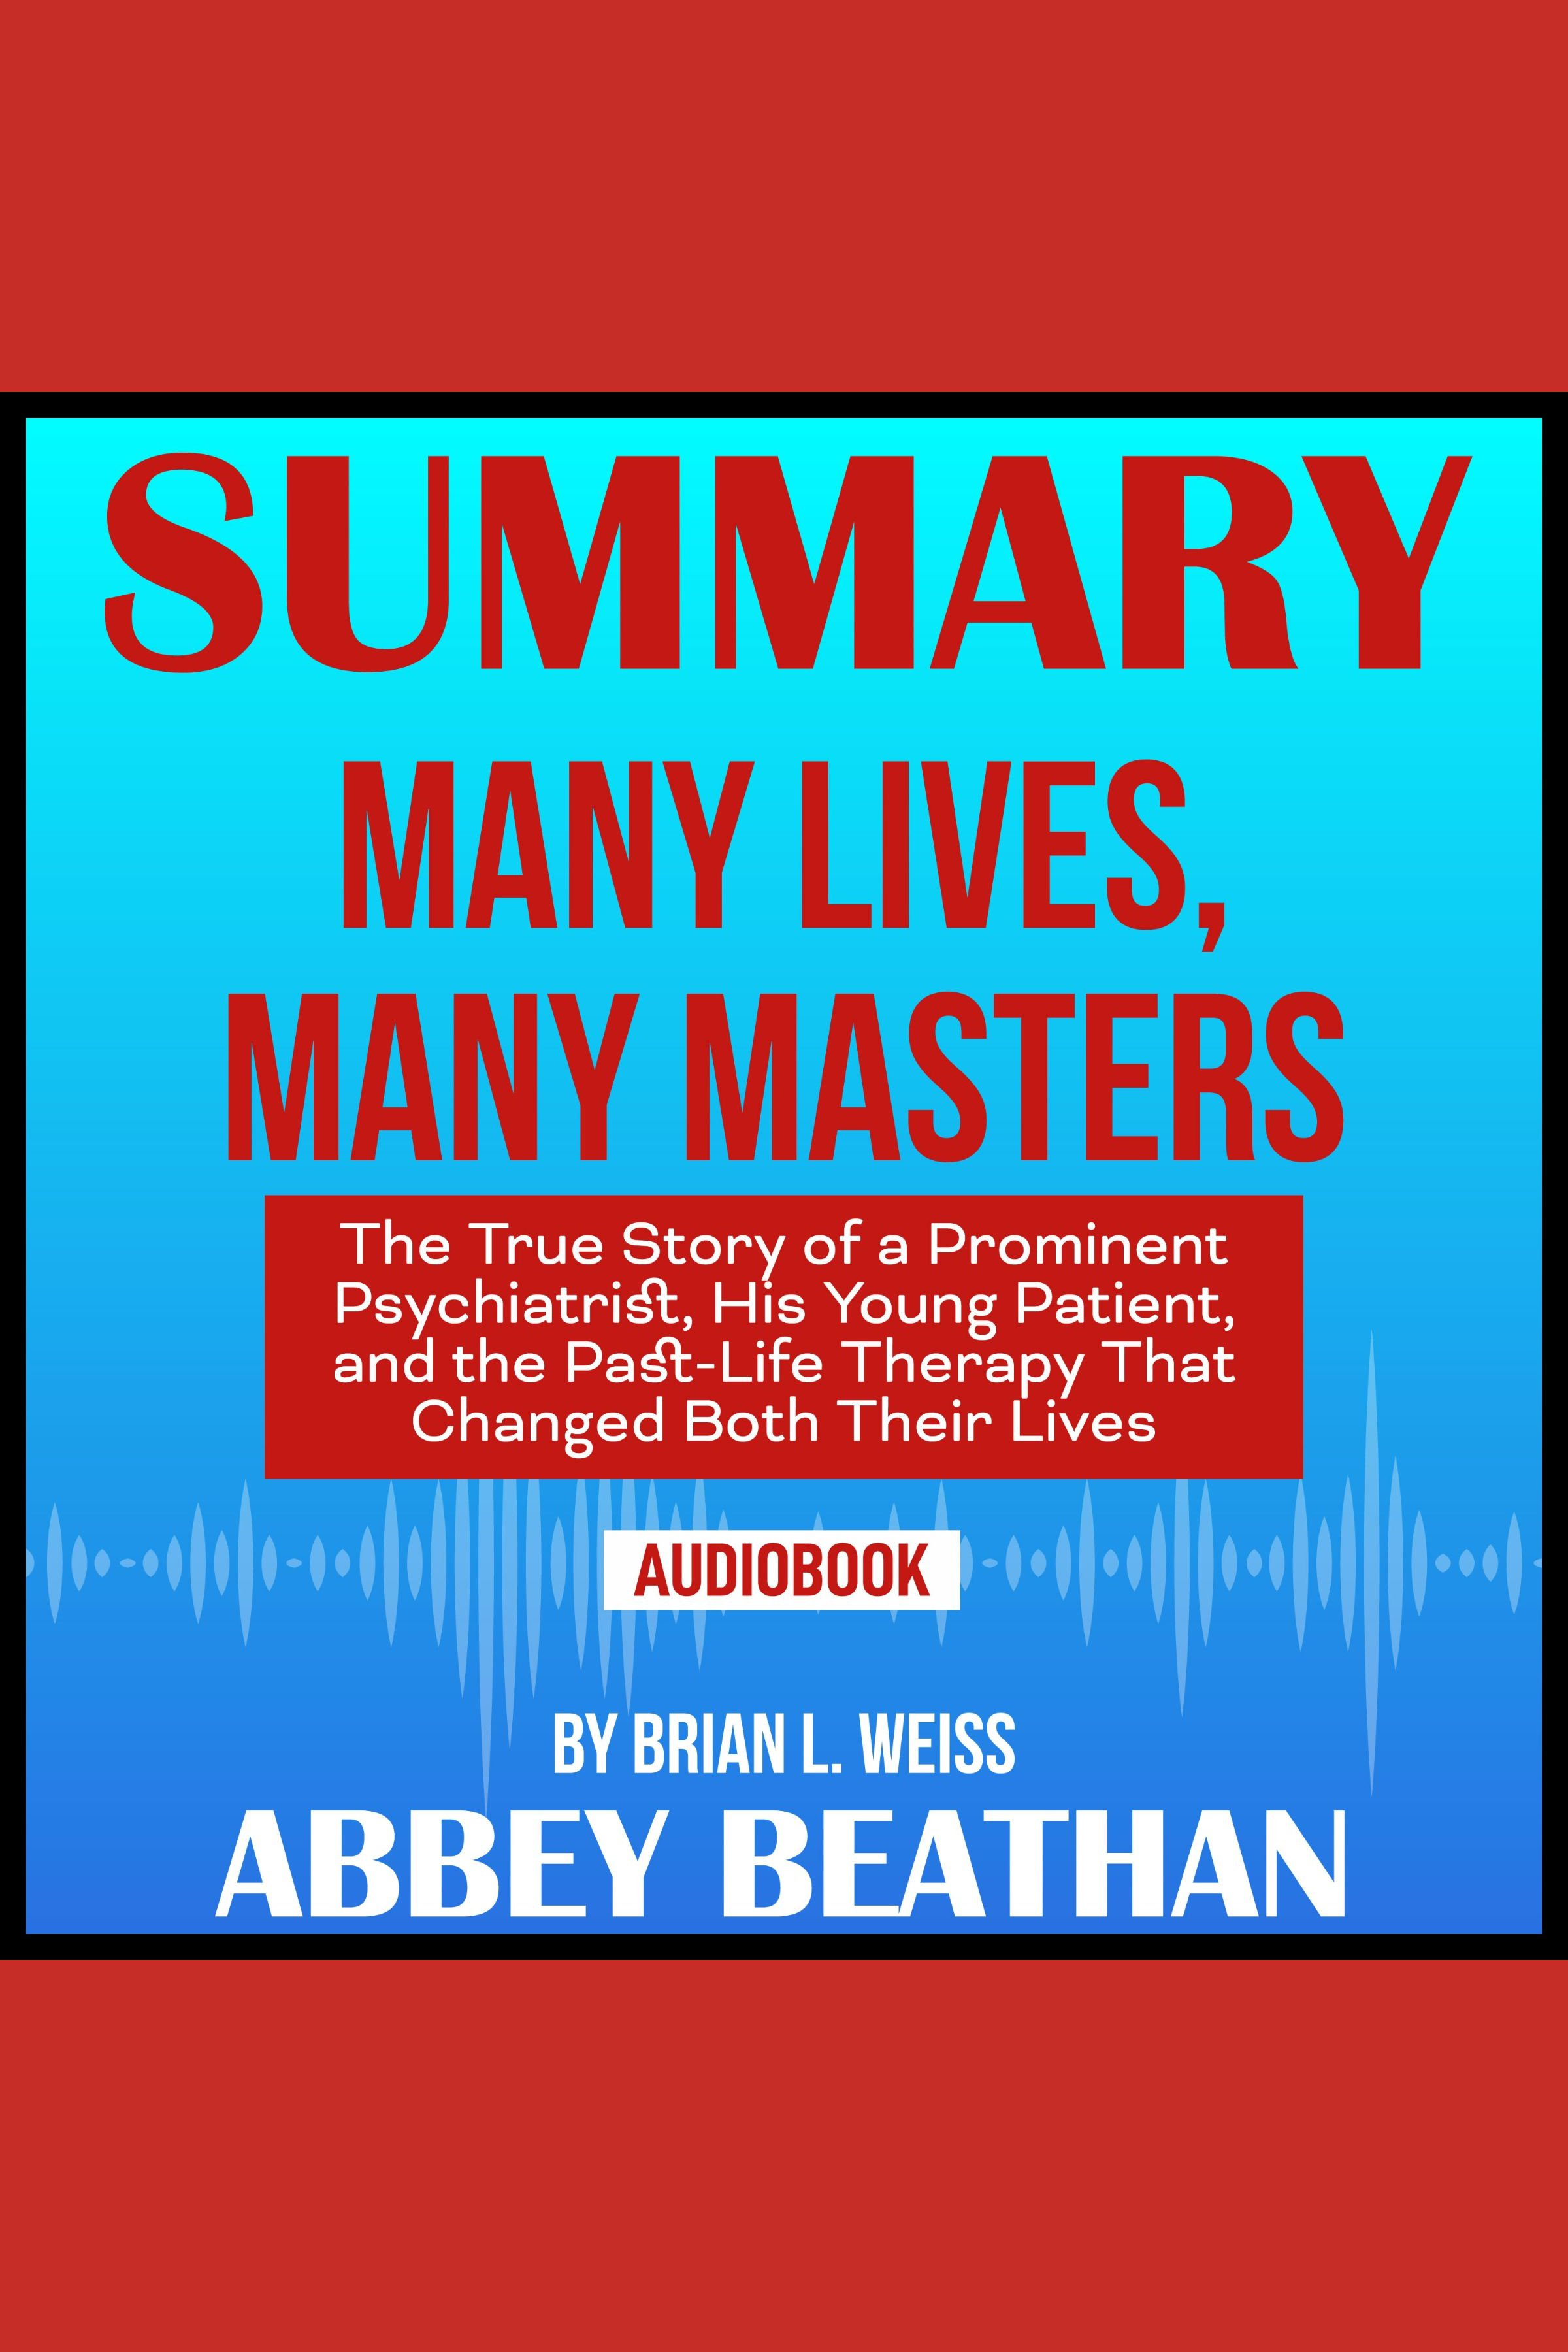 Esta es la portada del audiolibro Summary of Many Lives, Many Masters: The True Story of a Prominent Psychiatrist, His Young Patient, and the Past-Life Therapy That Changed Both Their Lives by Brian L. Weiss